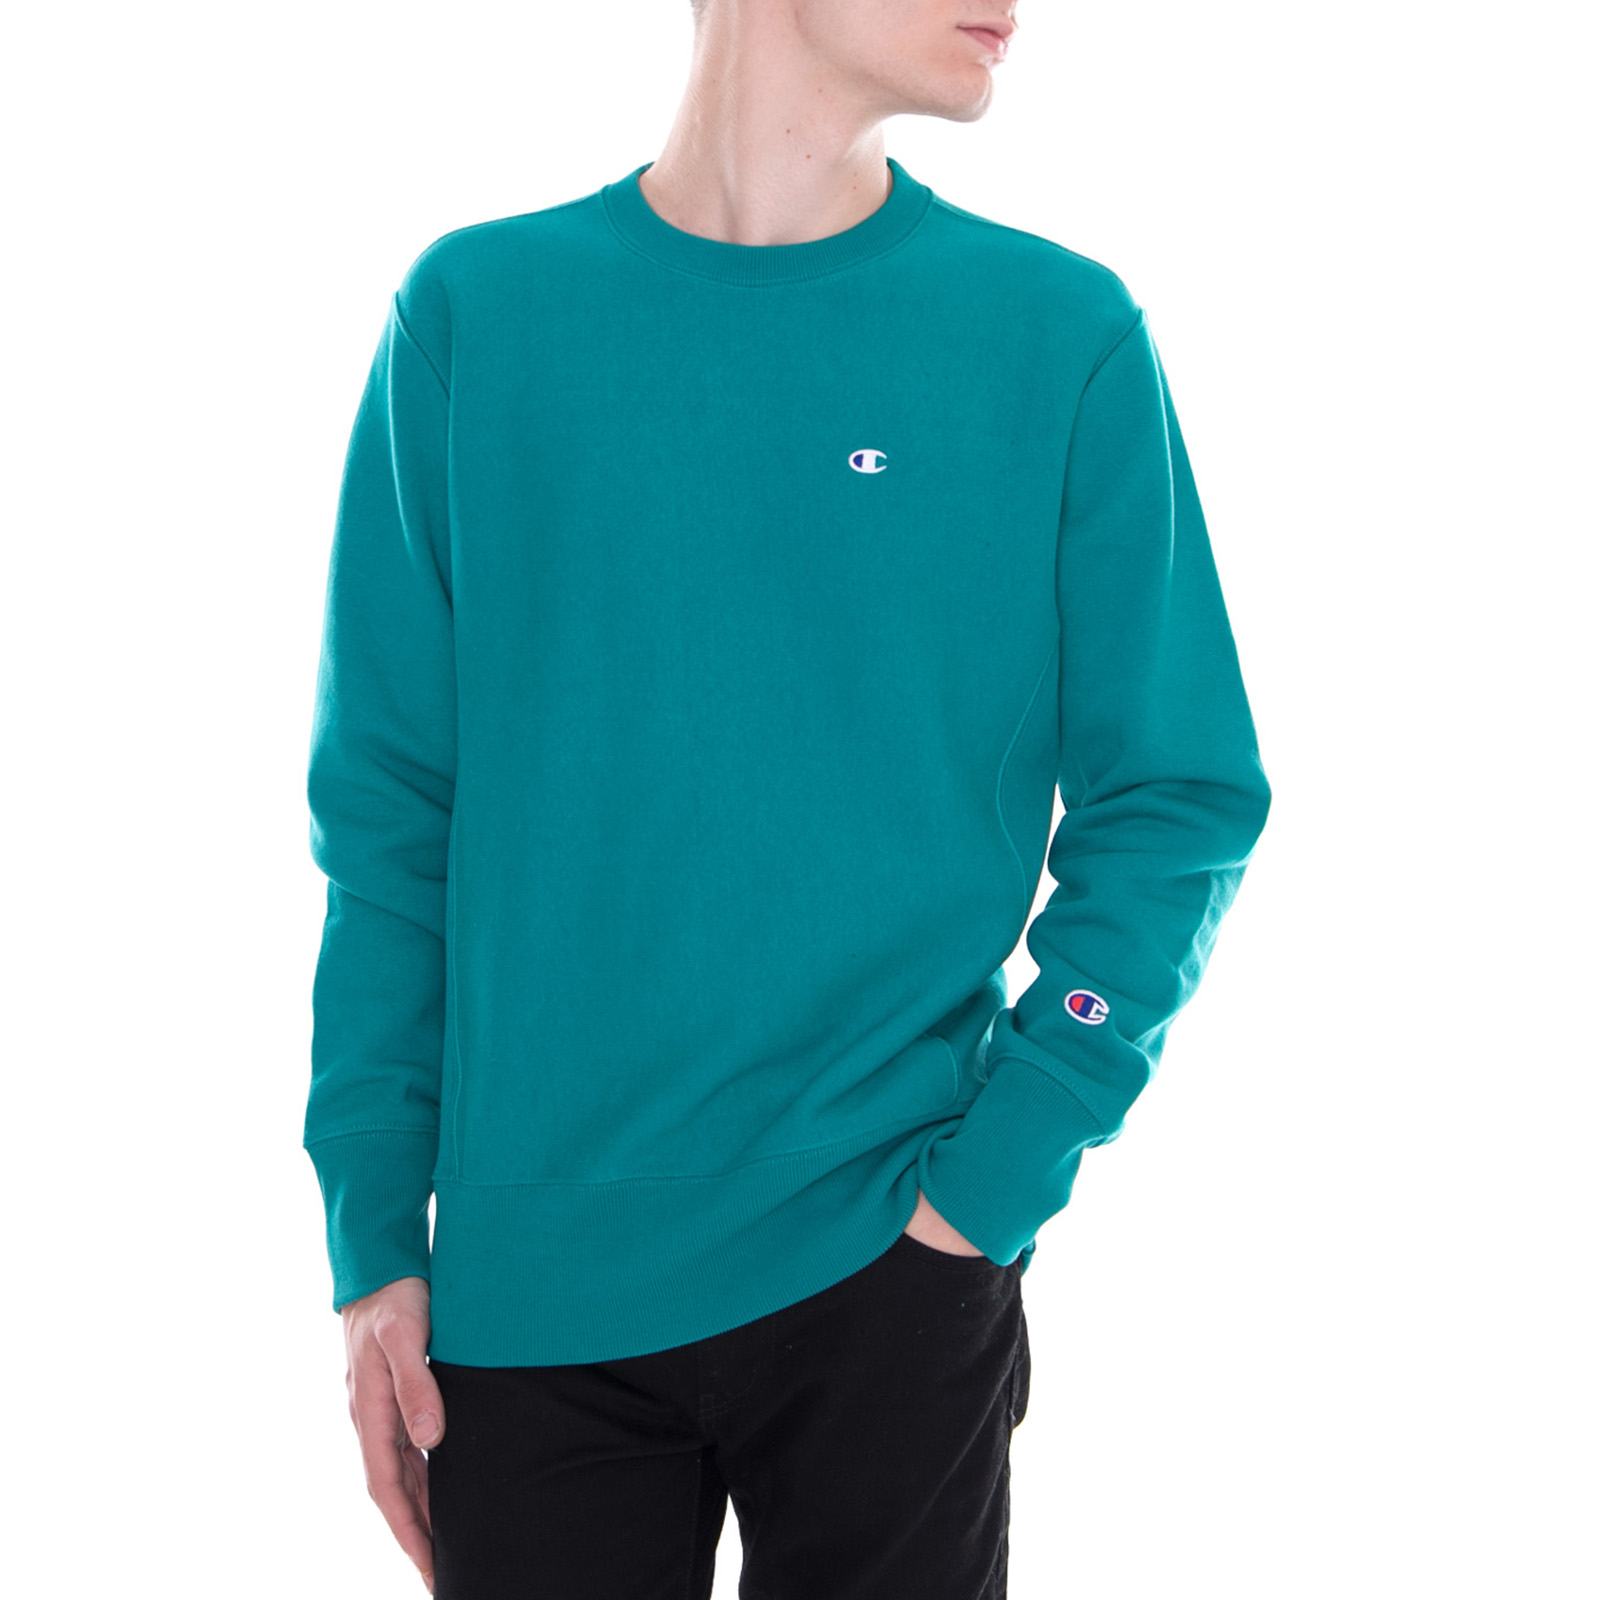 Détails sur Champion Sweatshirts Crewneck Sweat,Shirt Vert Vert